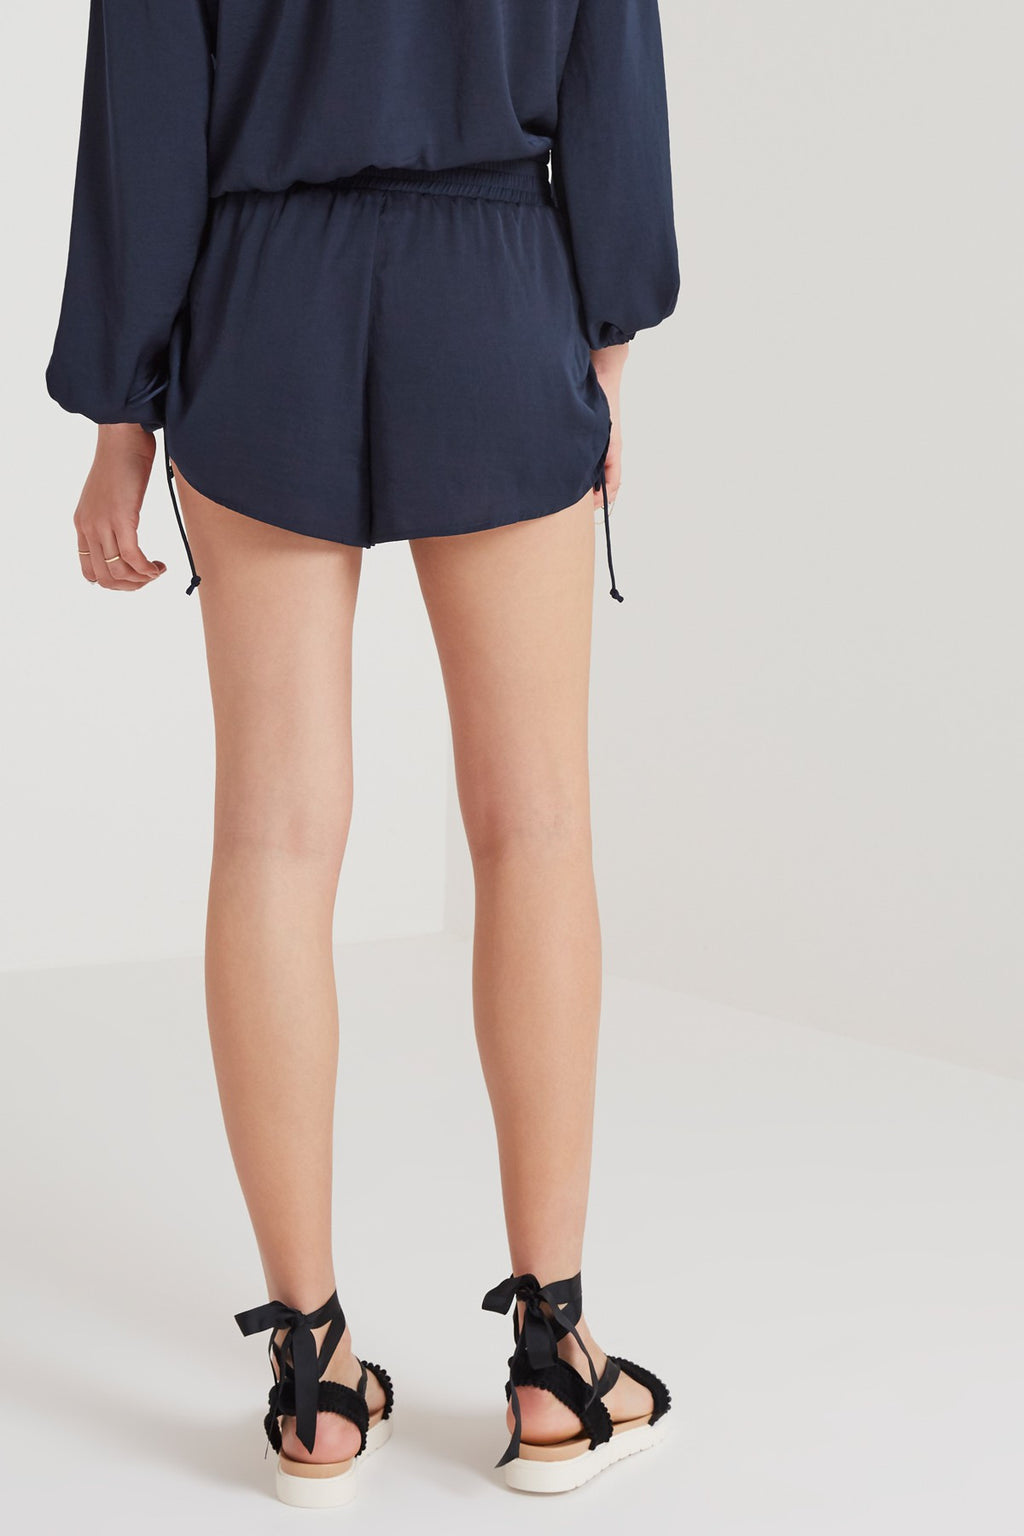 The Nightingale Short